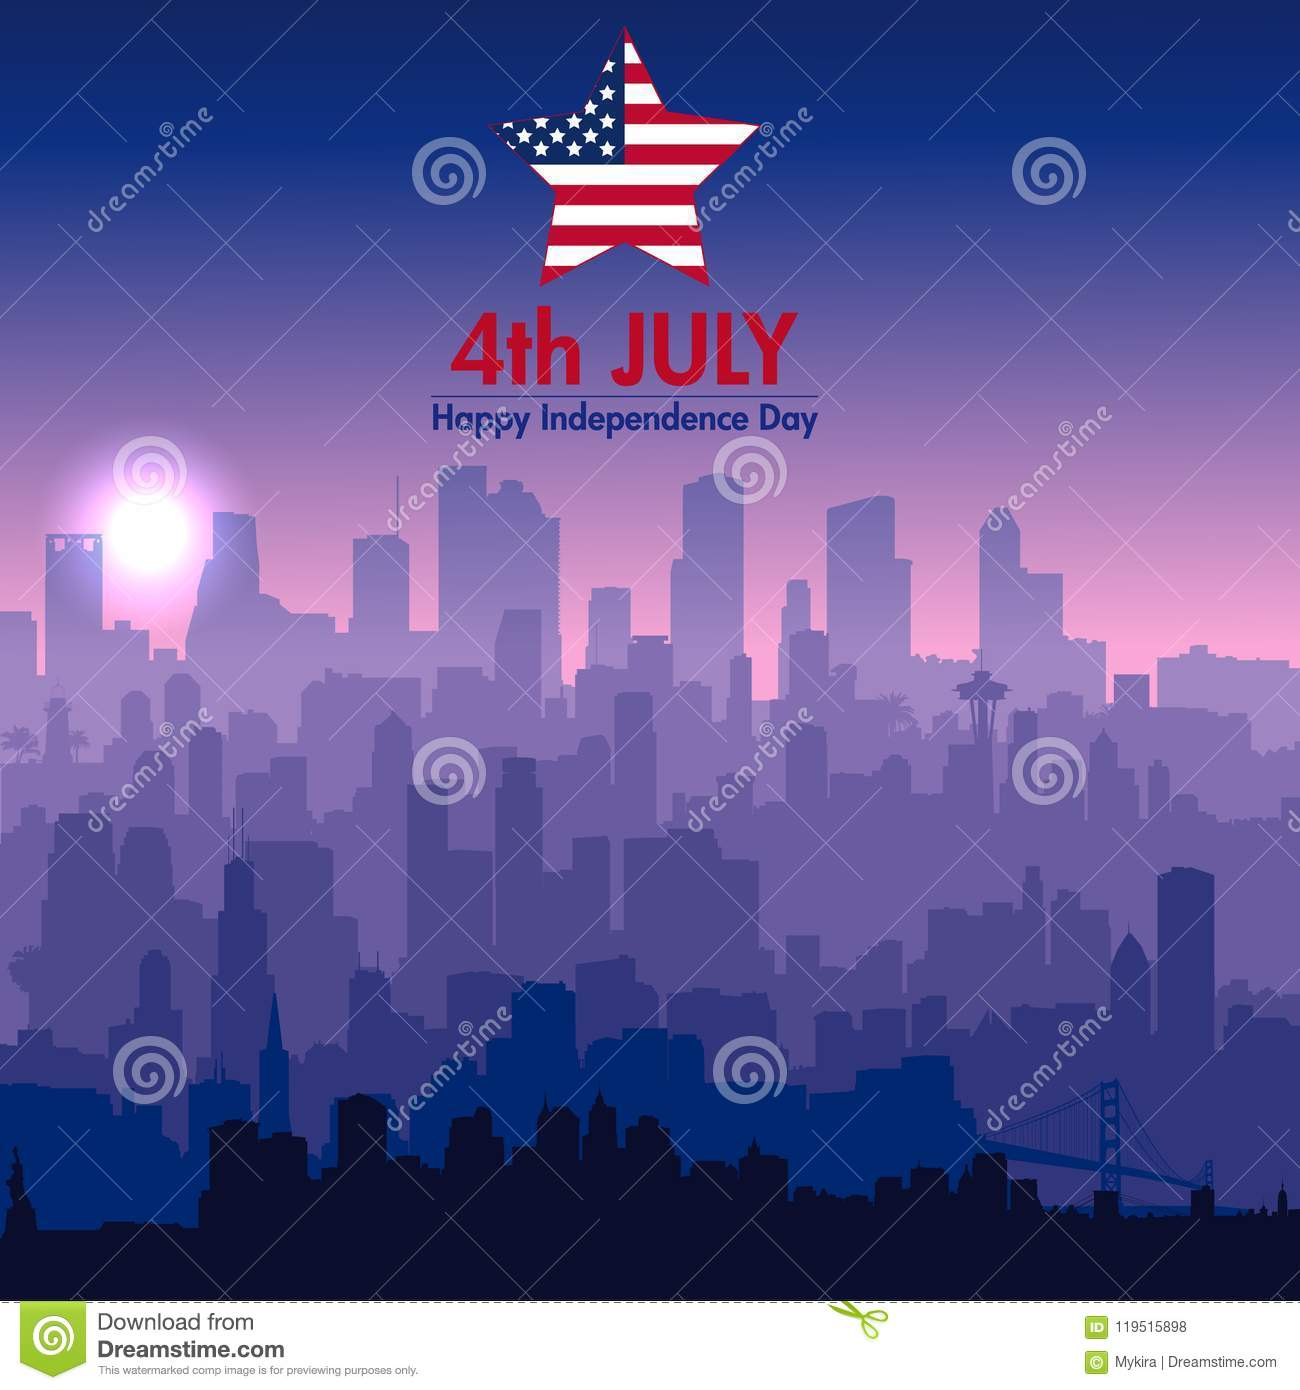 Download Patriotic Independence Day Background Stock Vector - Illustration of holiday, country: 119515898